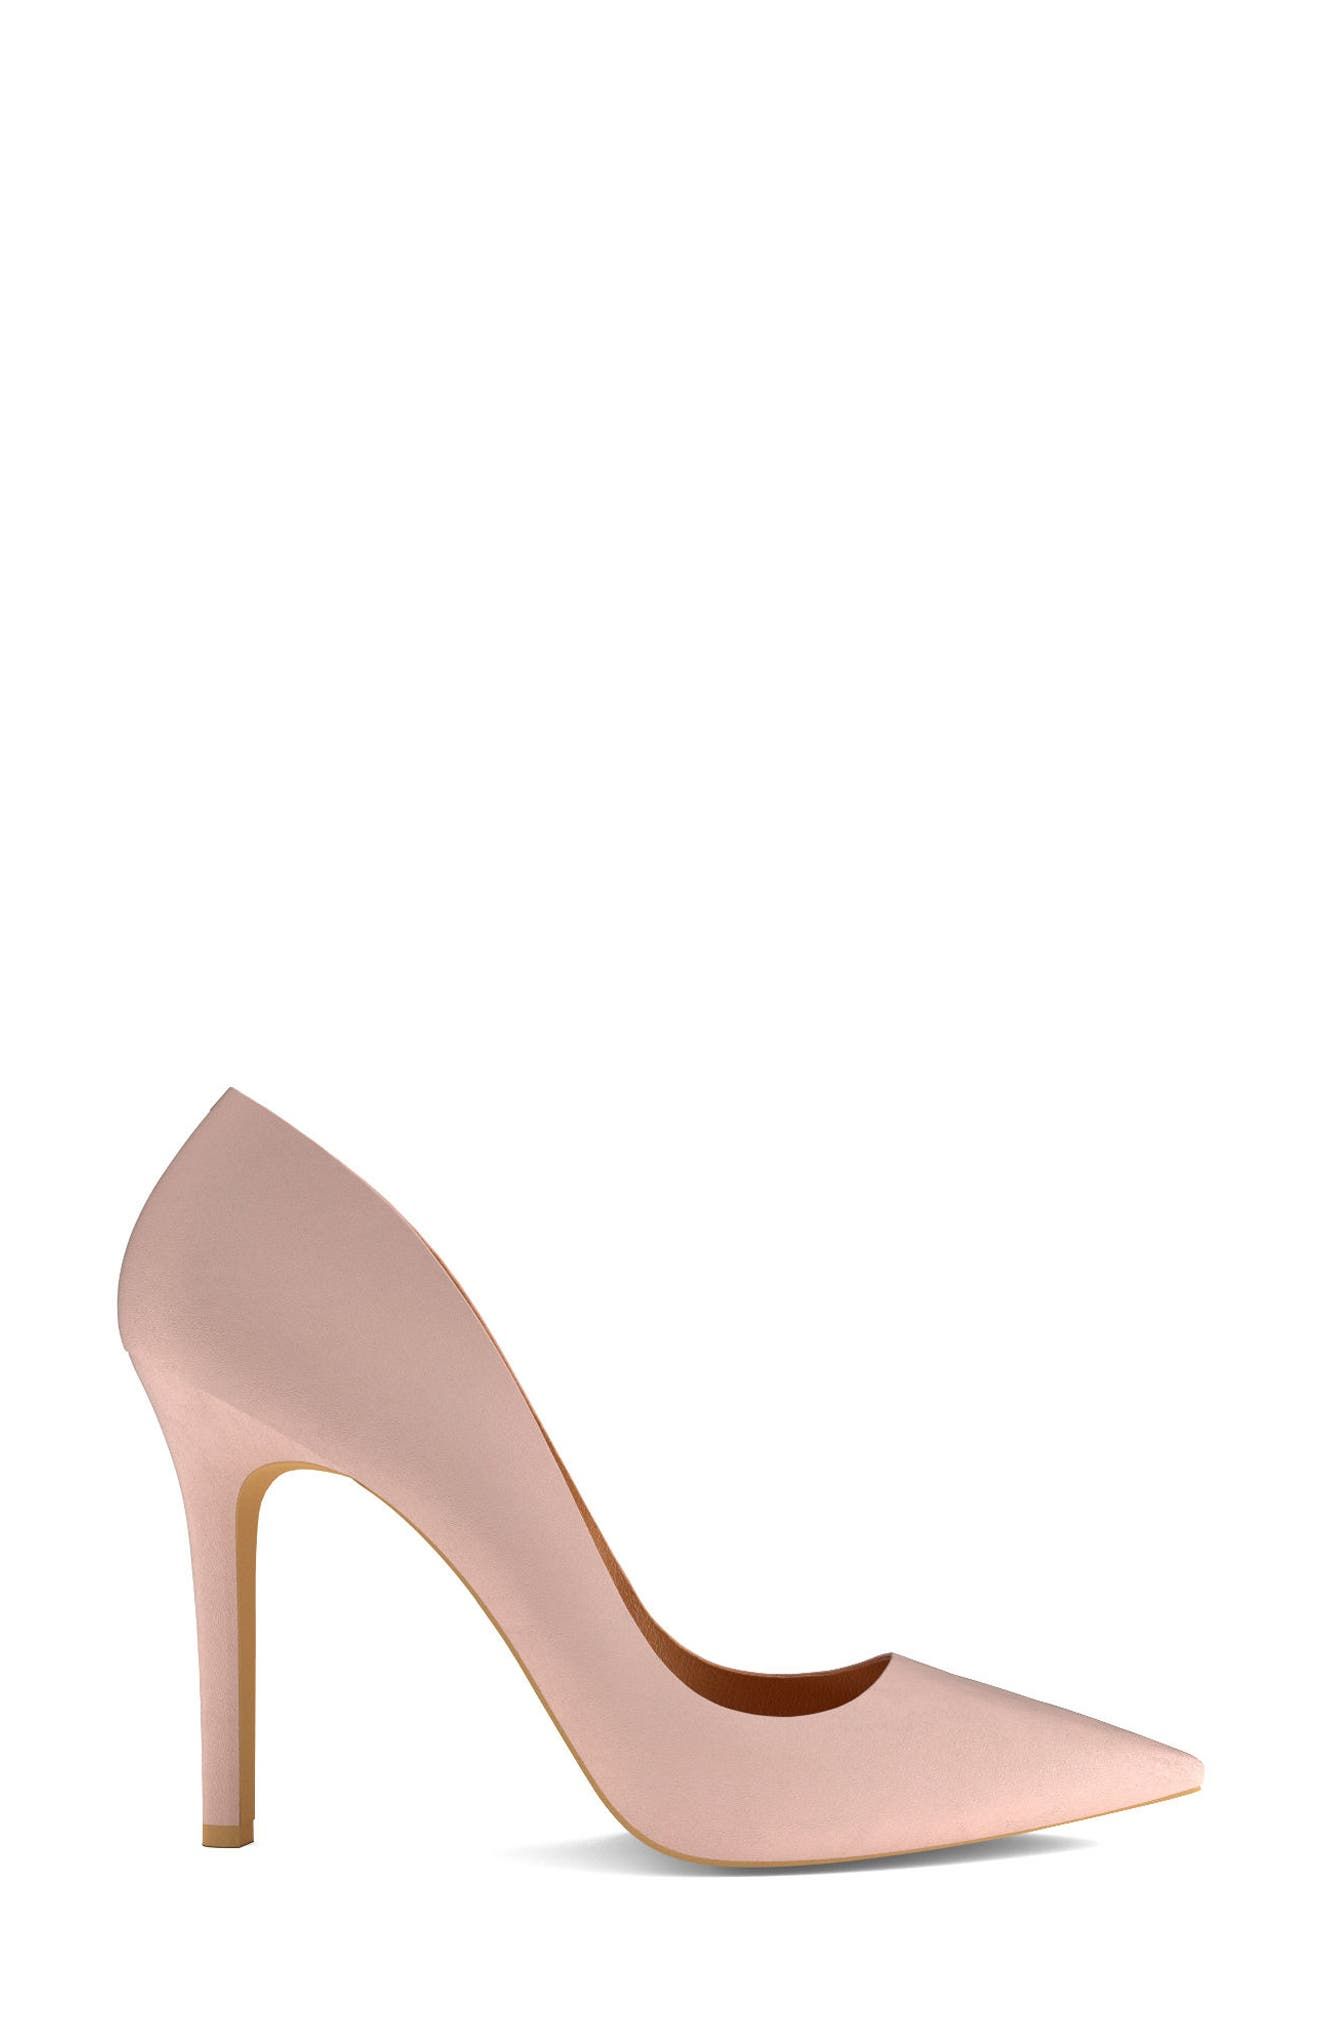 Pointy Toe Pump,                             Alternate thumbnail 3, color,                             Blush Nude Leather